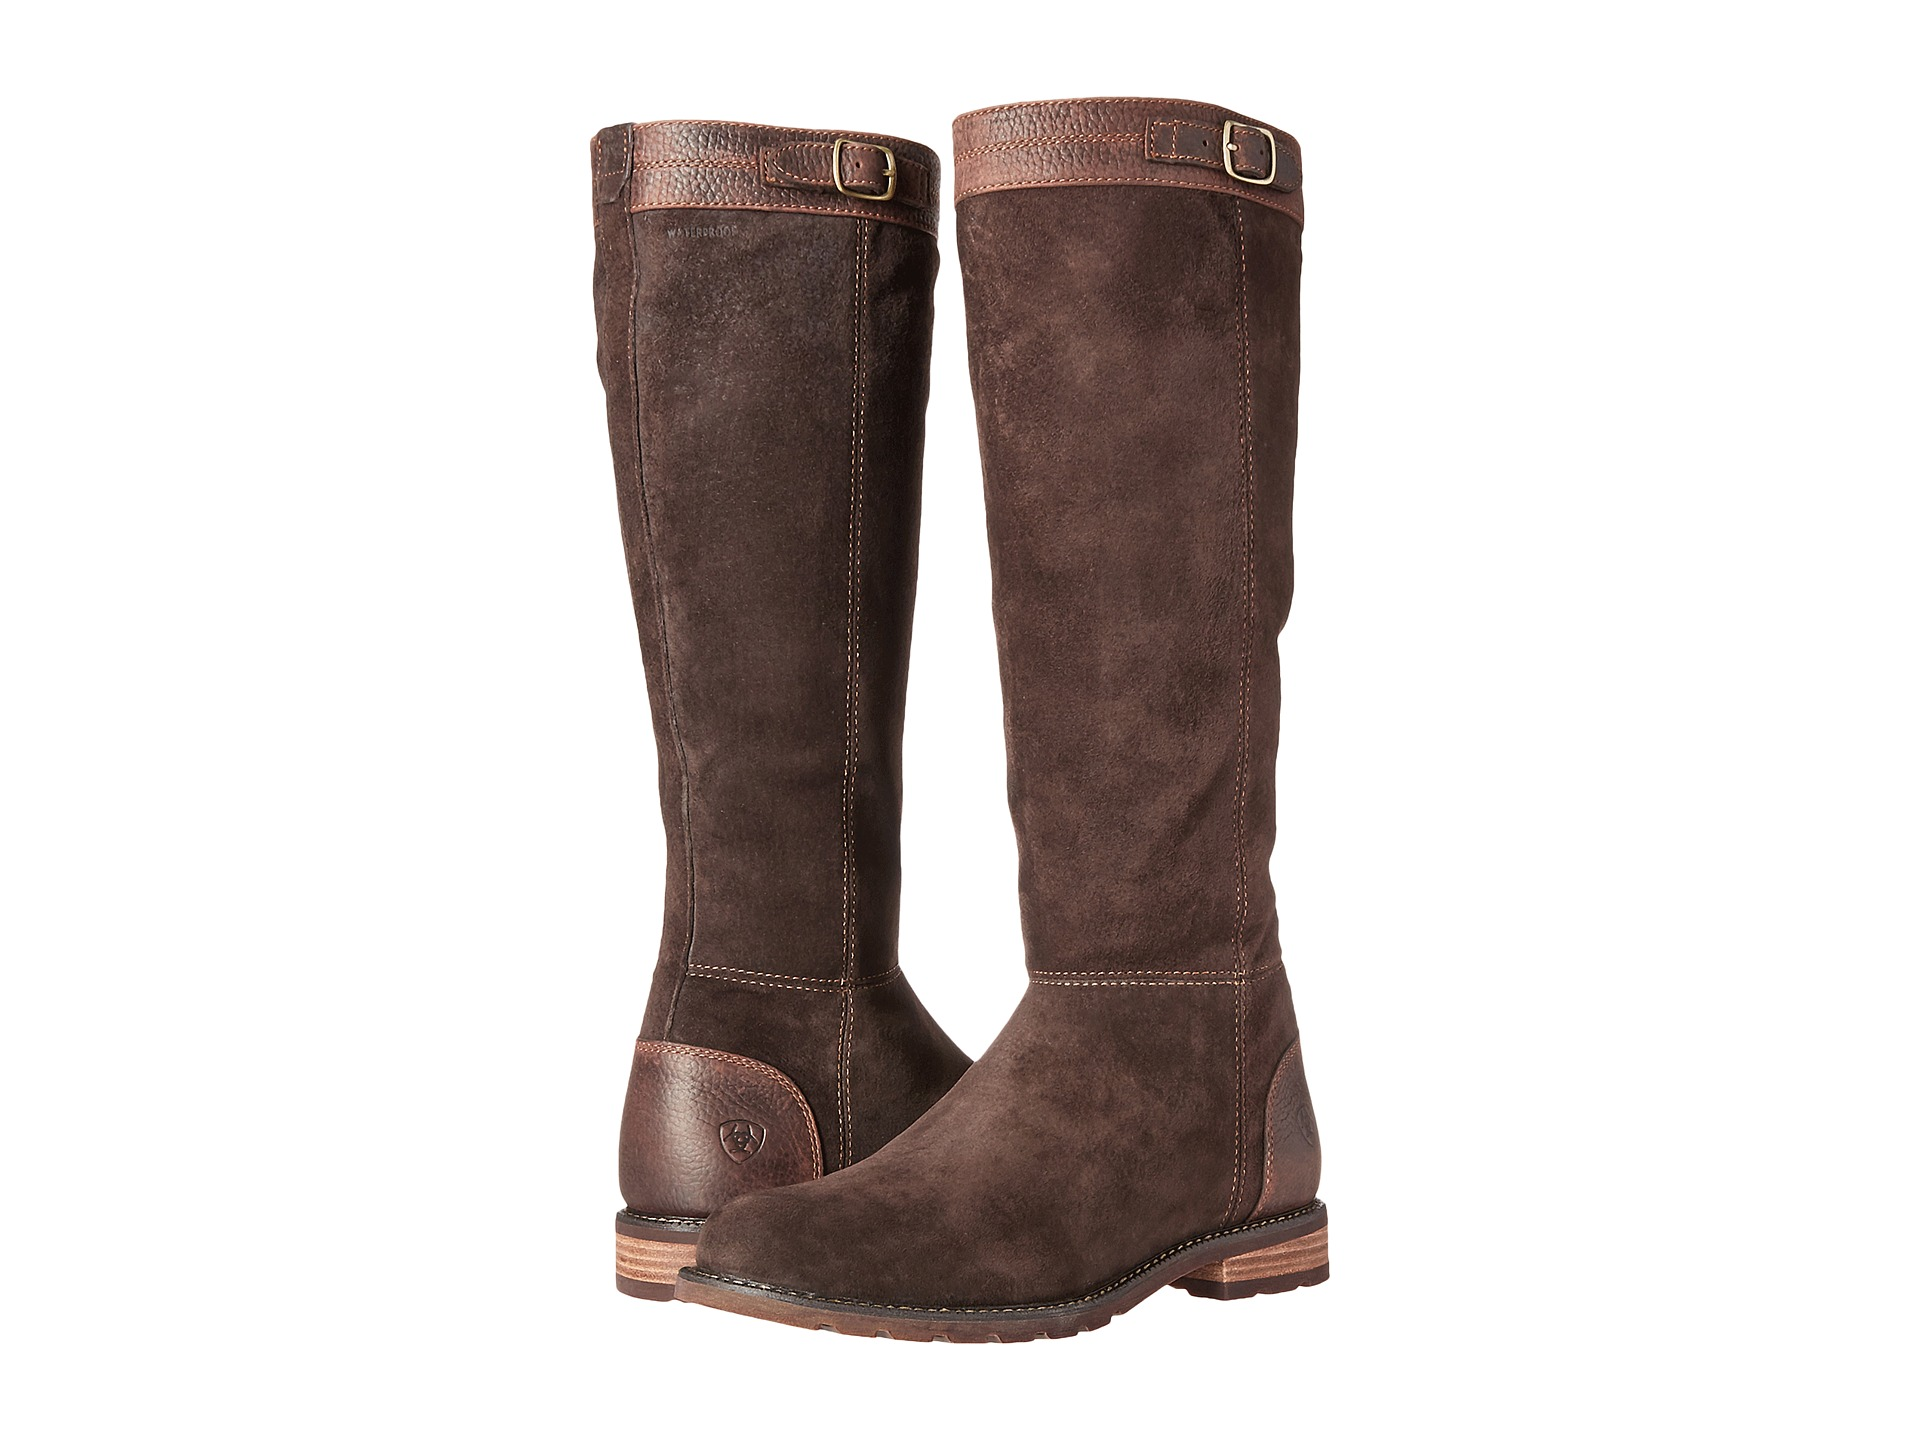 Ariat, Boots, Women at 6pm.com